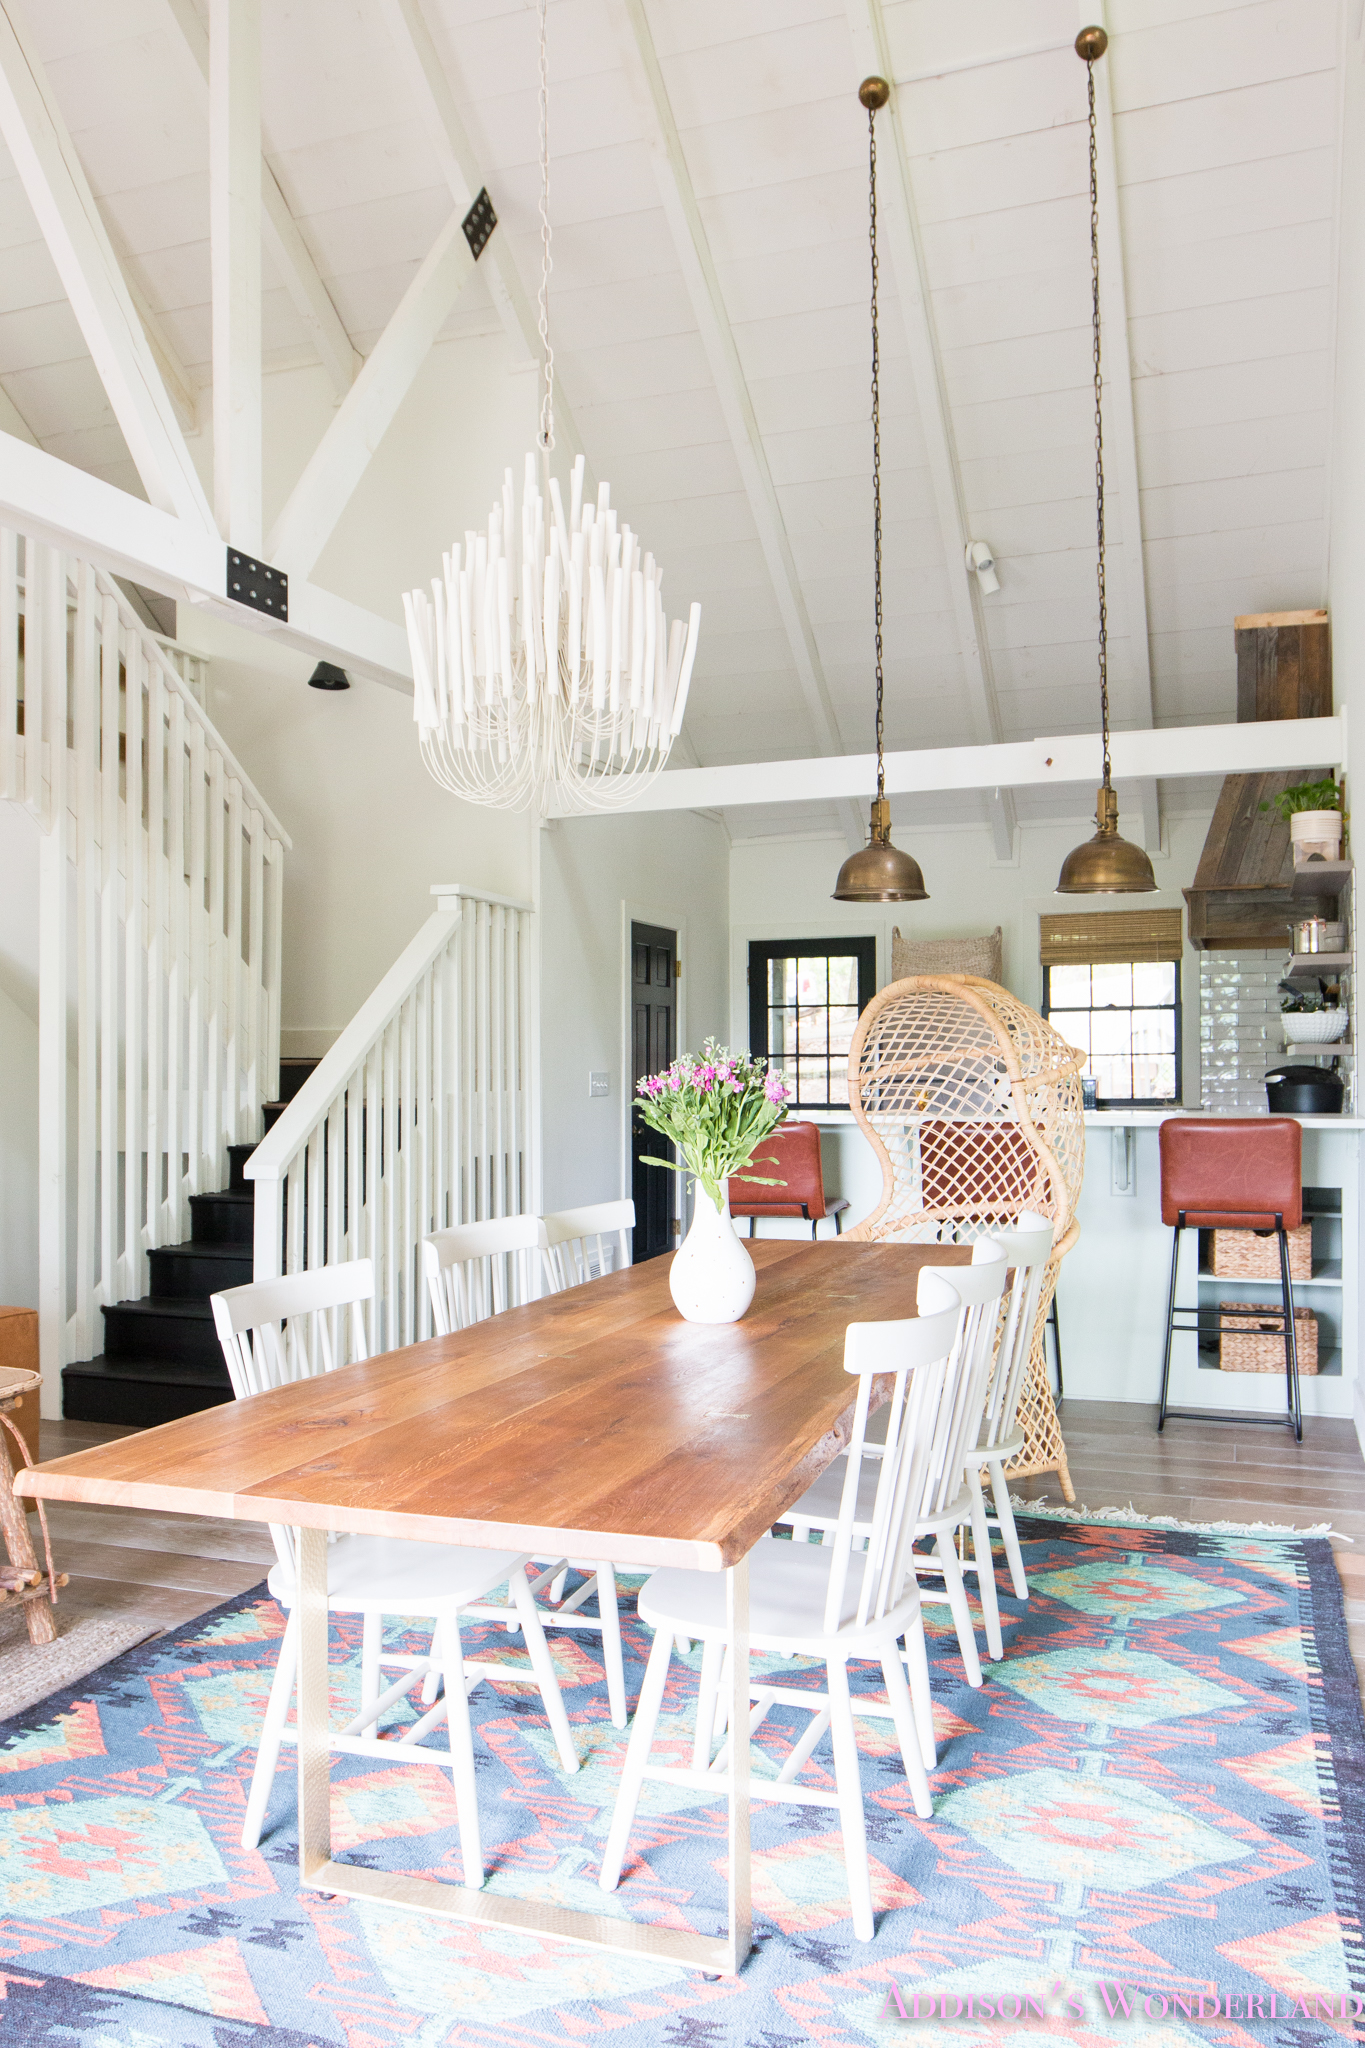 Our Aztec Country Chic All White Cabin Dining Room Reveal